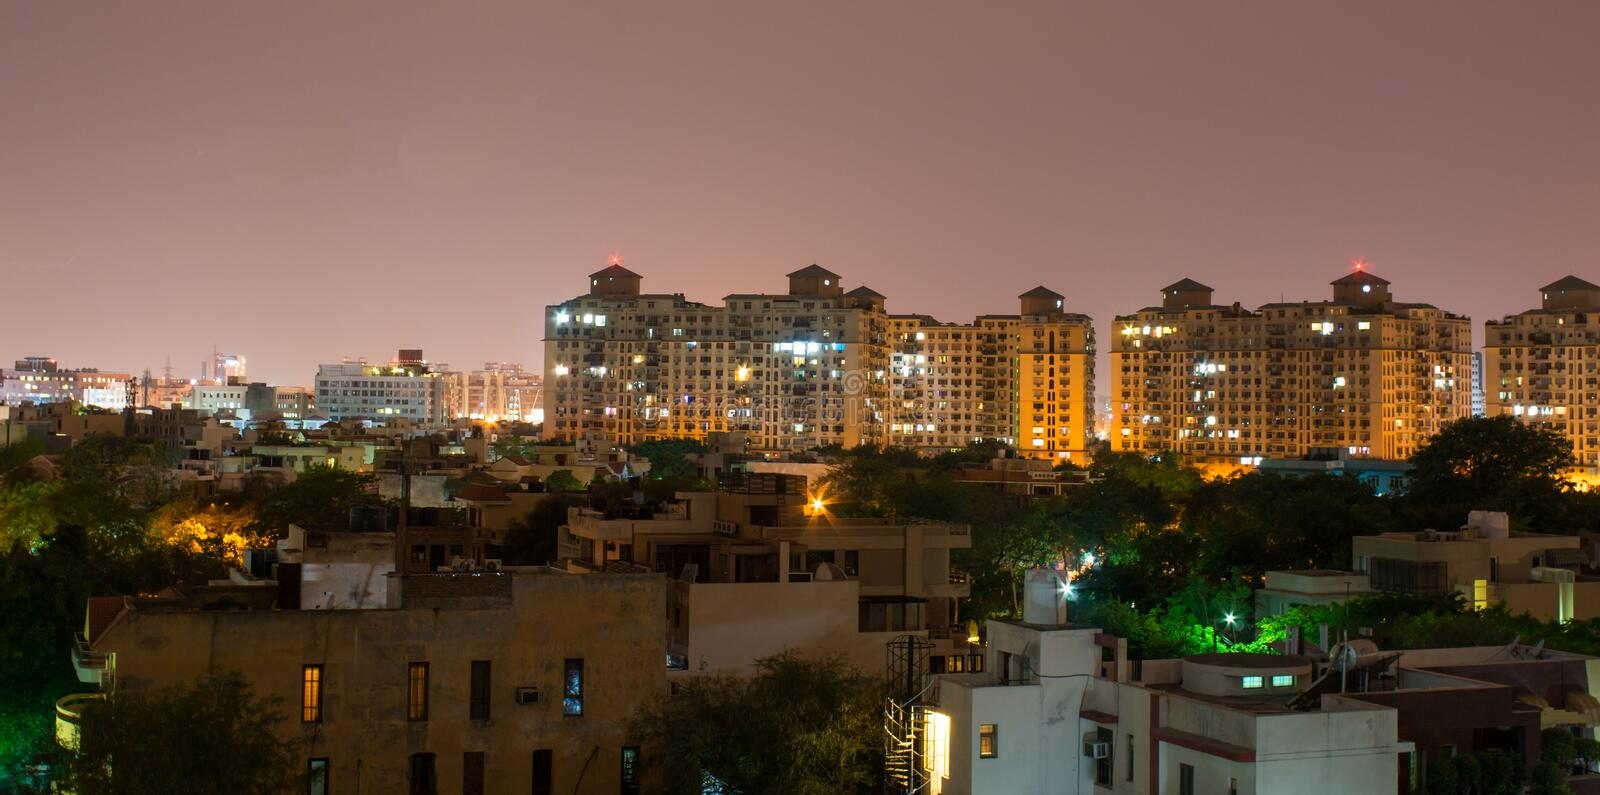 Gurgaon, India skyline. Skyscrapers in Gurgaon india. The rapid development in India is most evident in urban areas like gurgaon royalty free stock image